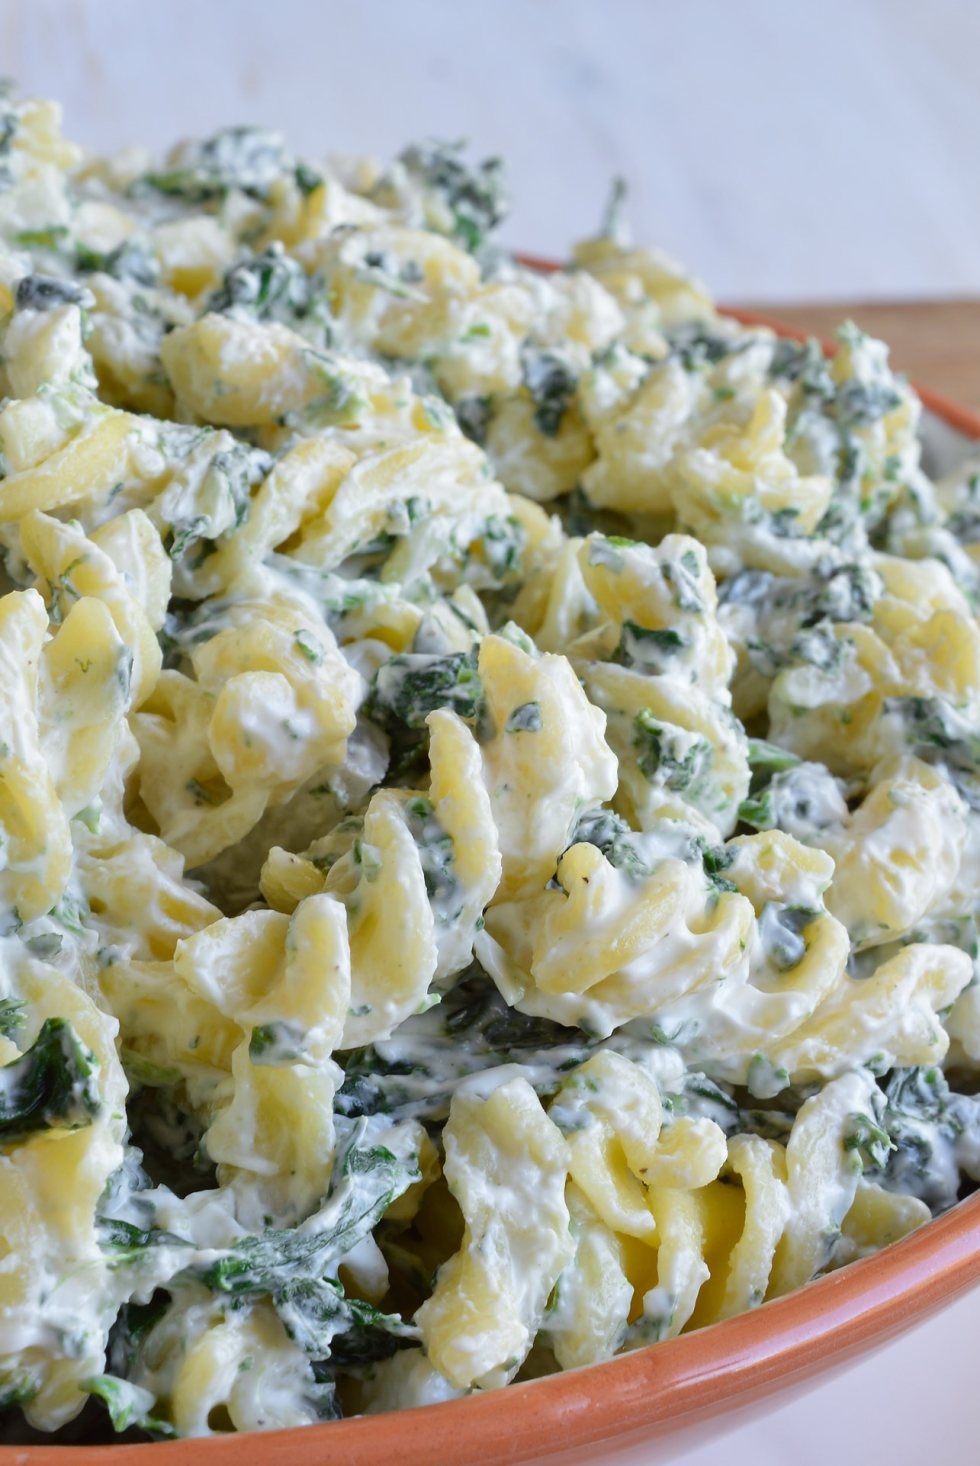 Gluten Free Pasta Salad is not only possible but delicious! This pasta salad recipe has all of the flavors of spinach dip in one great side dish.